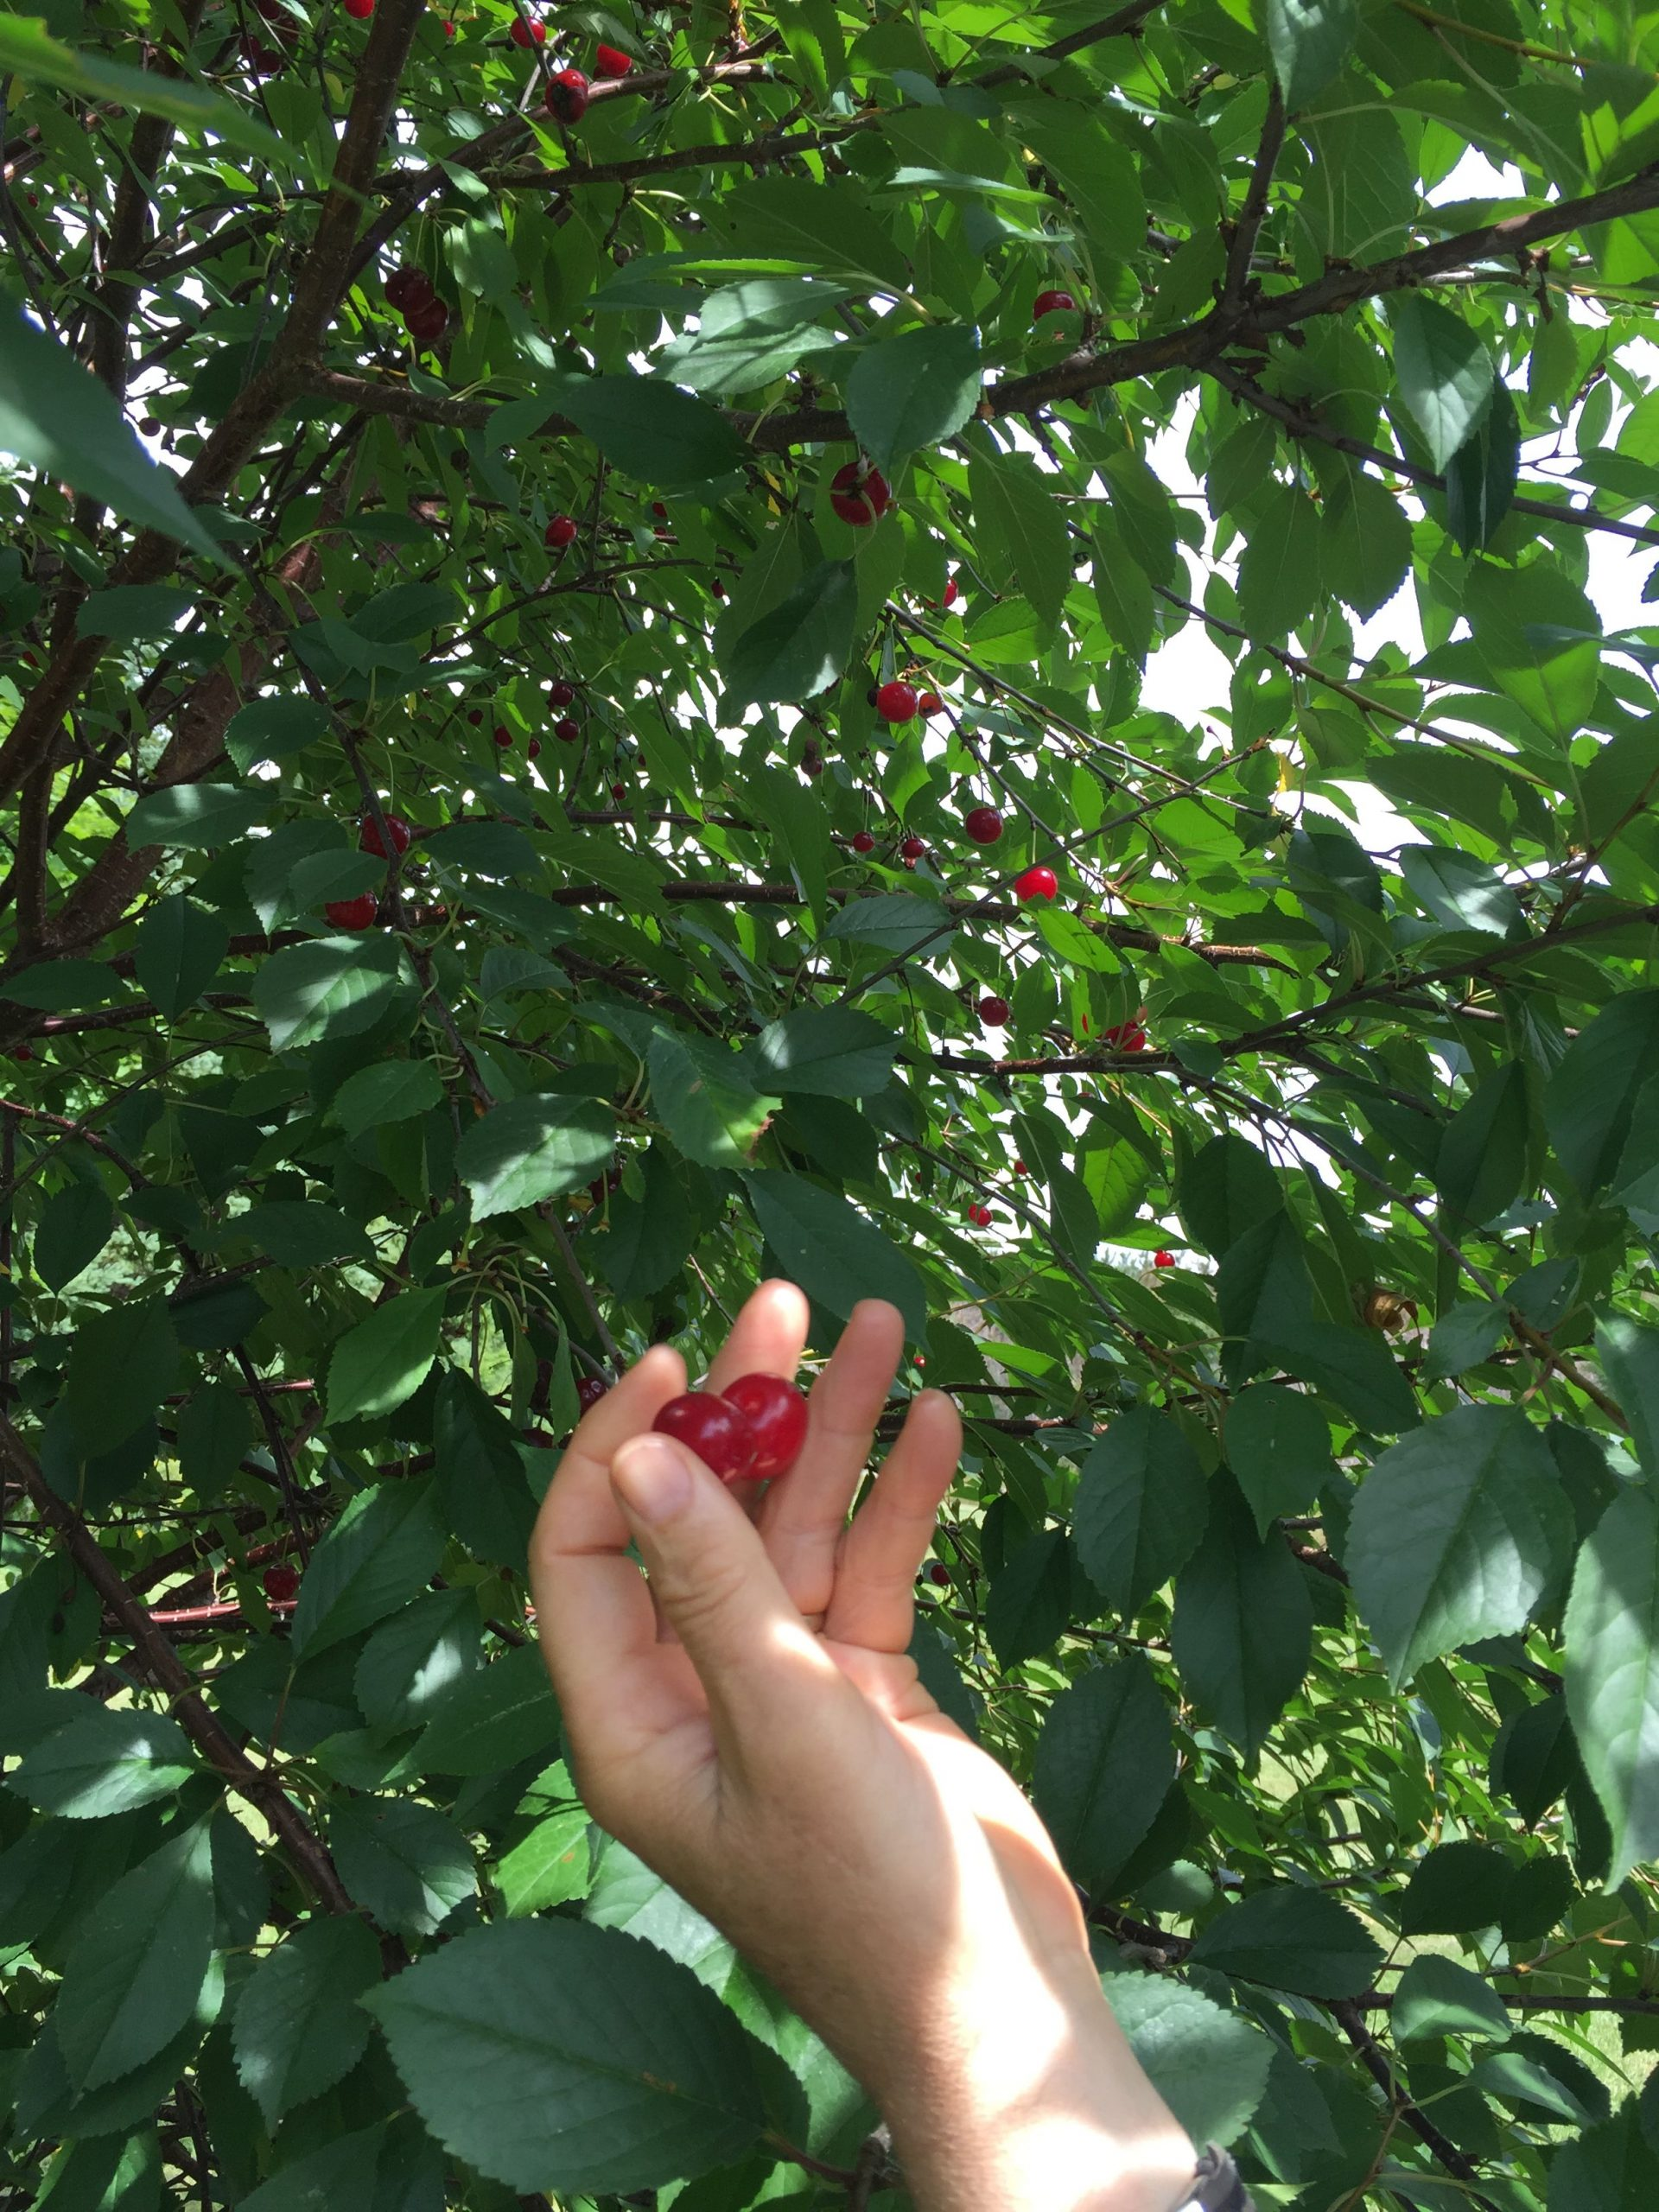 Picking fresh cherries from the tree